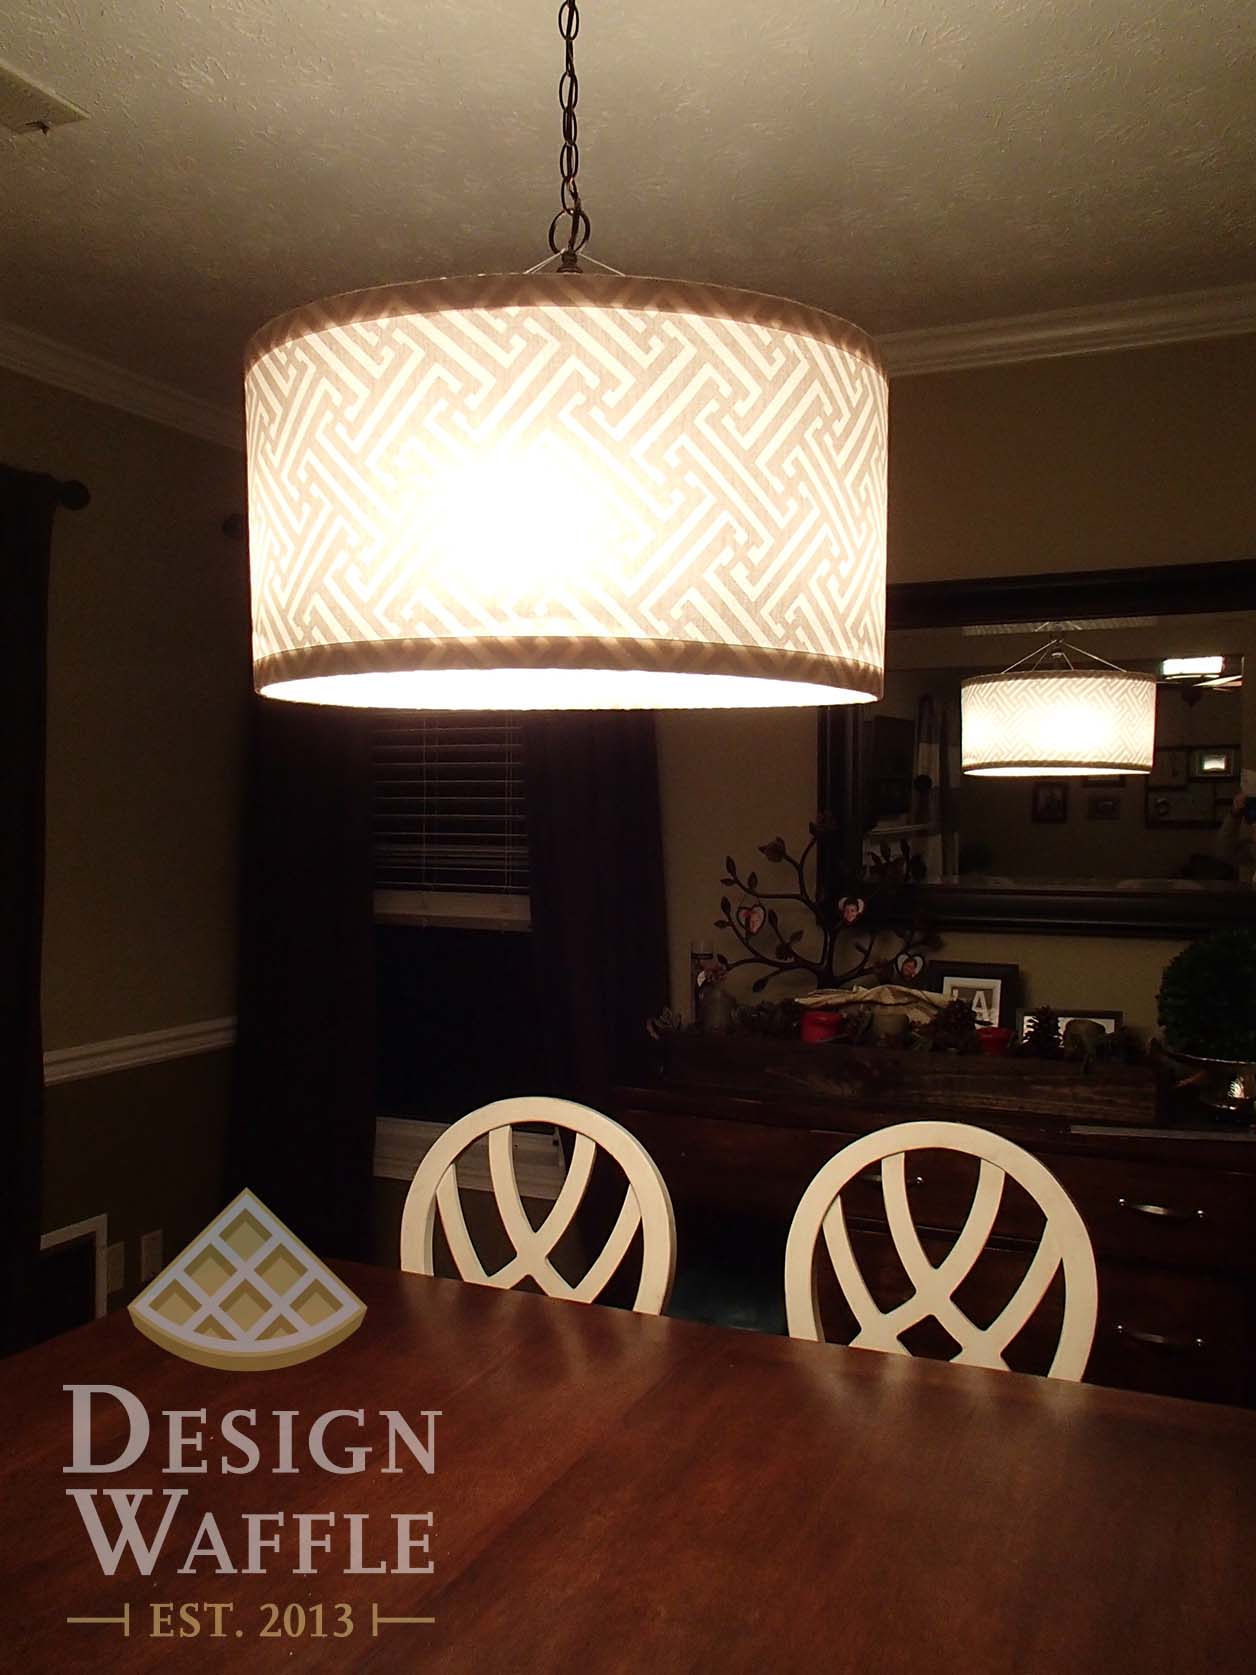 Diy chandelier drum shade design waffle diy chandelier drum shade aloadofball Gallery